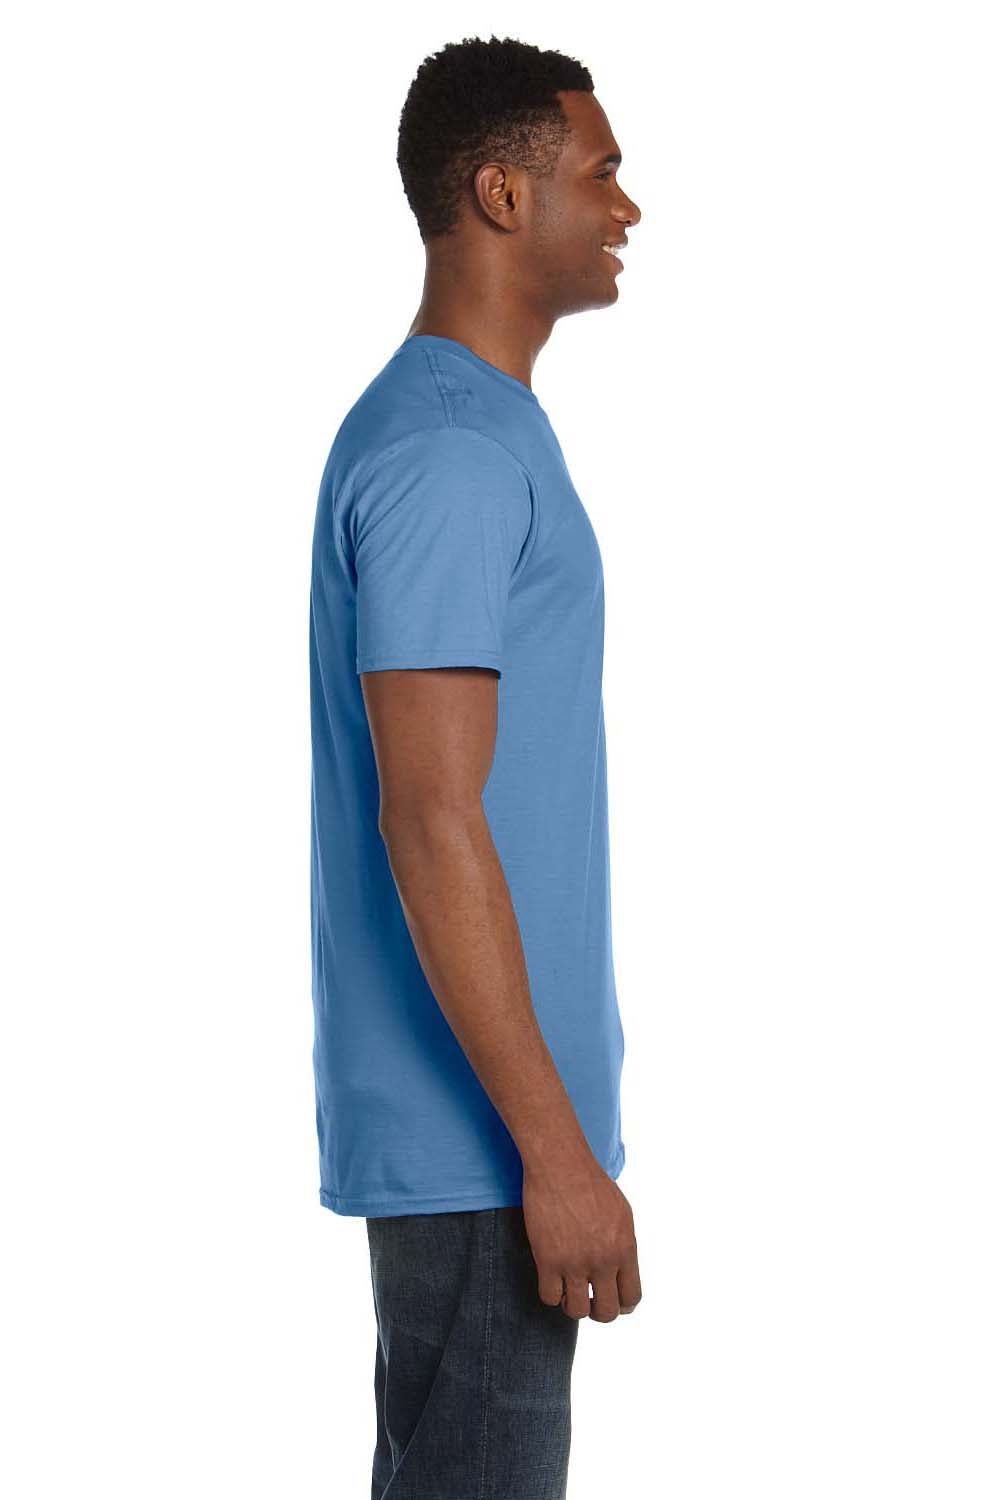 Hanes 4980 Mens Nano-T Short Sleeve Crewneck T-Shirt Carolina Blue Side